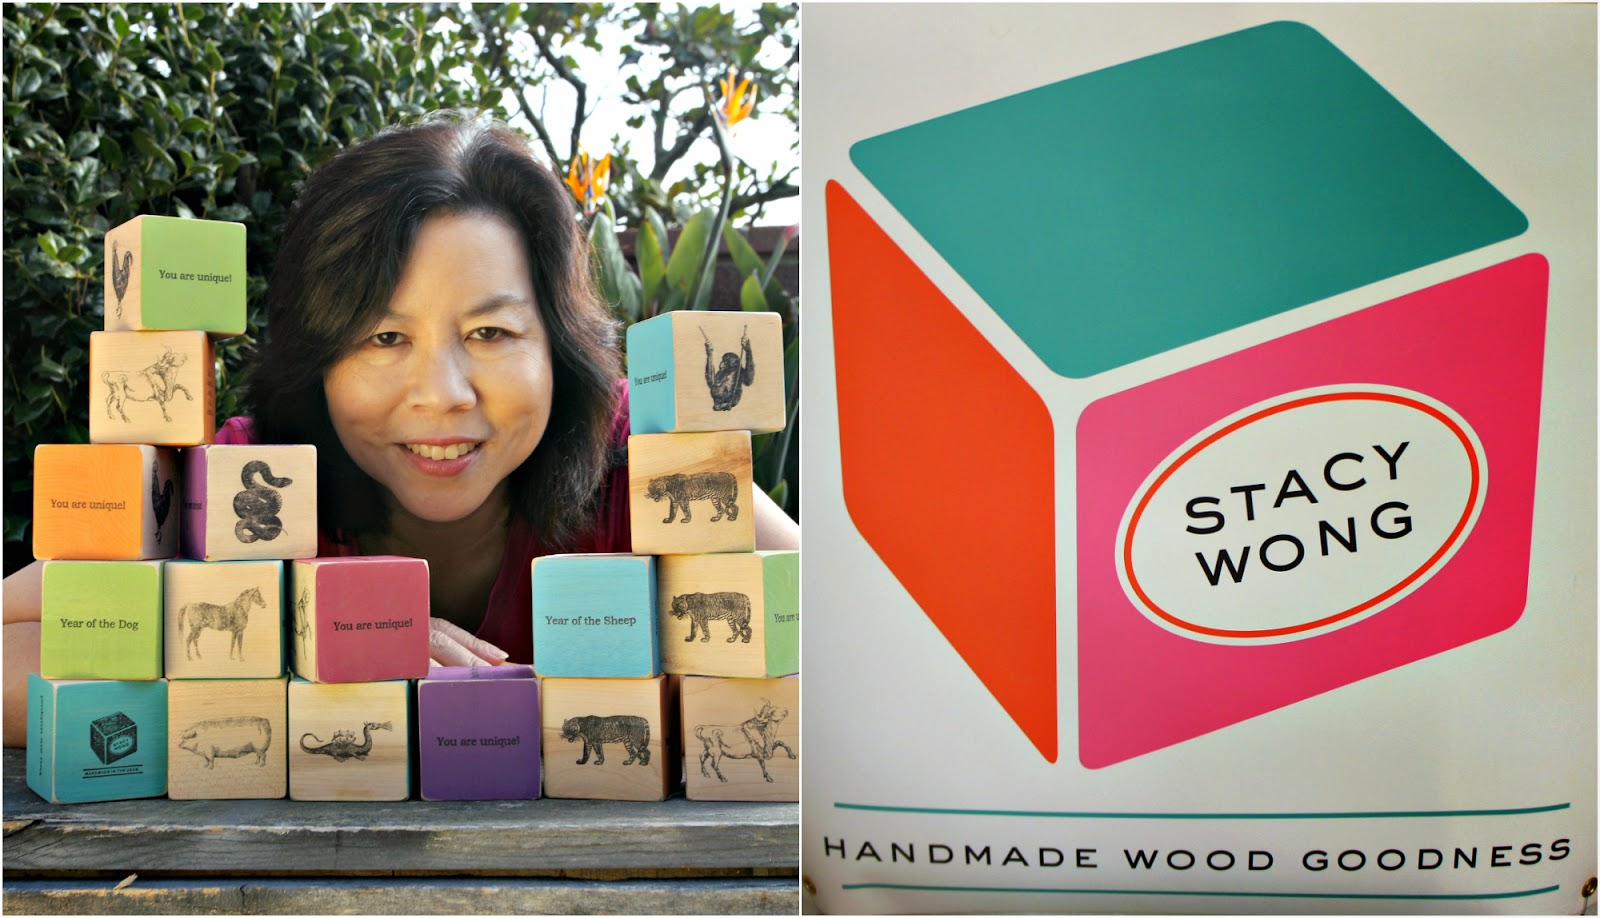 Stacy Wong Handmade feature and GIVEAWAY! on Shop Small Saturday at Diane's Vintage Zest!